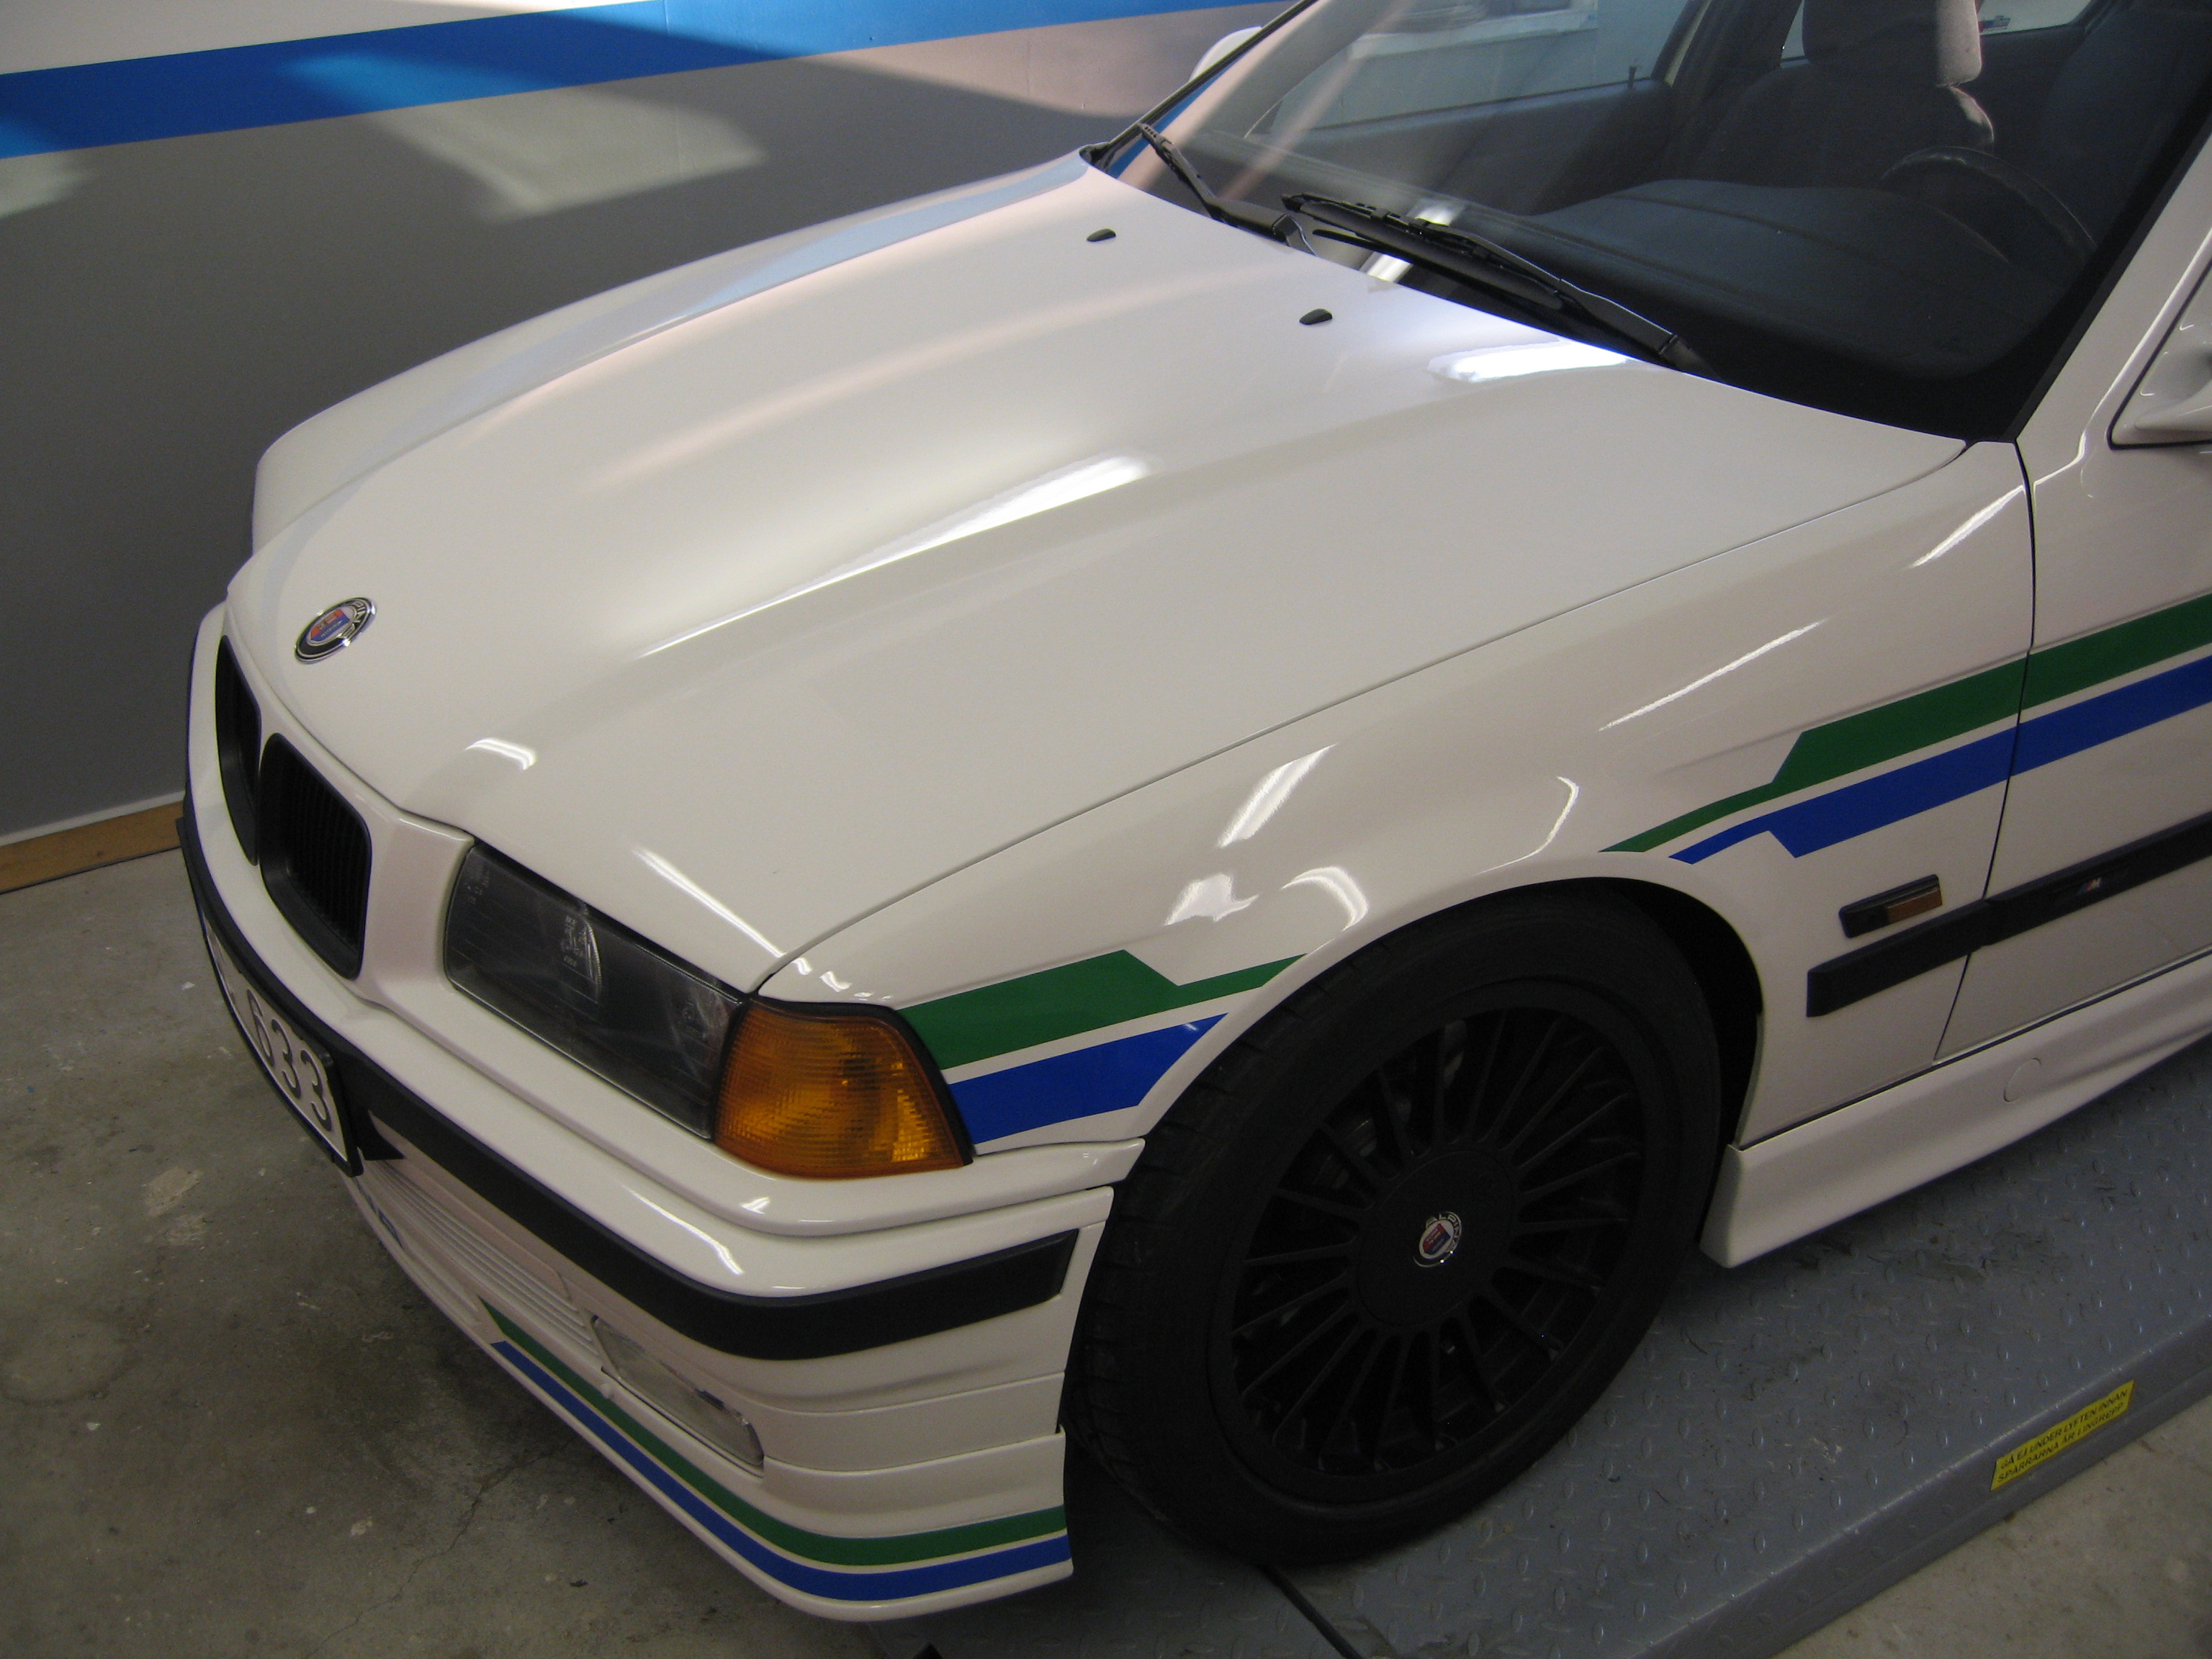 For Sale Alpina B BMW M Forum And M Forums - Alpina sale